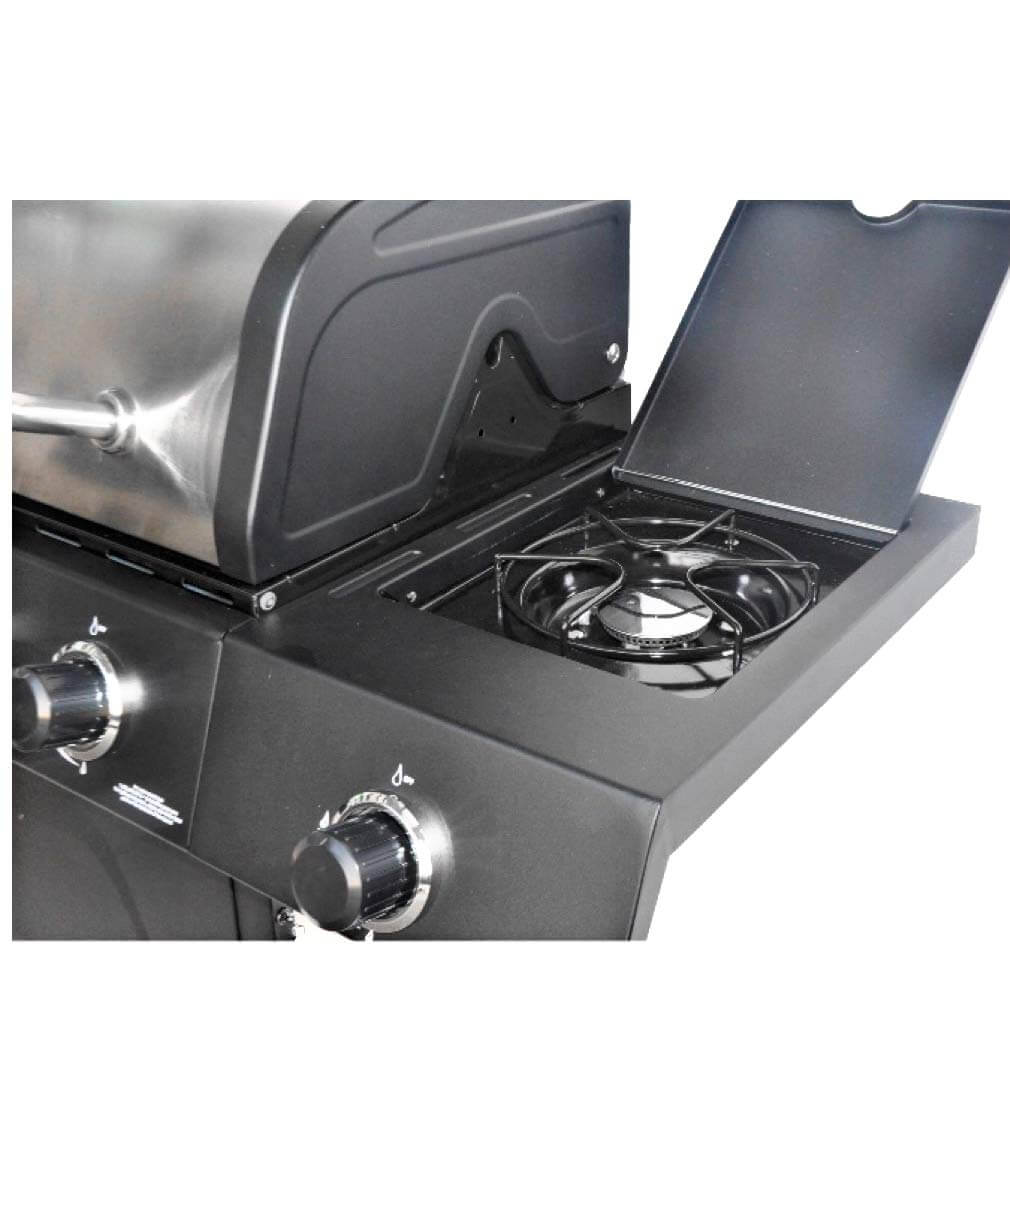 Best Gas Grill under $300 for Delicious and Easy Home Grilling, RevoAce 4-Burner LP Gas Grill with Side Burner, gas grill reviews 2020,